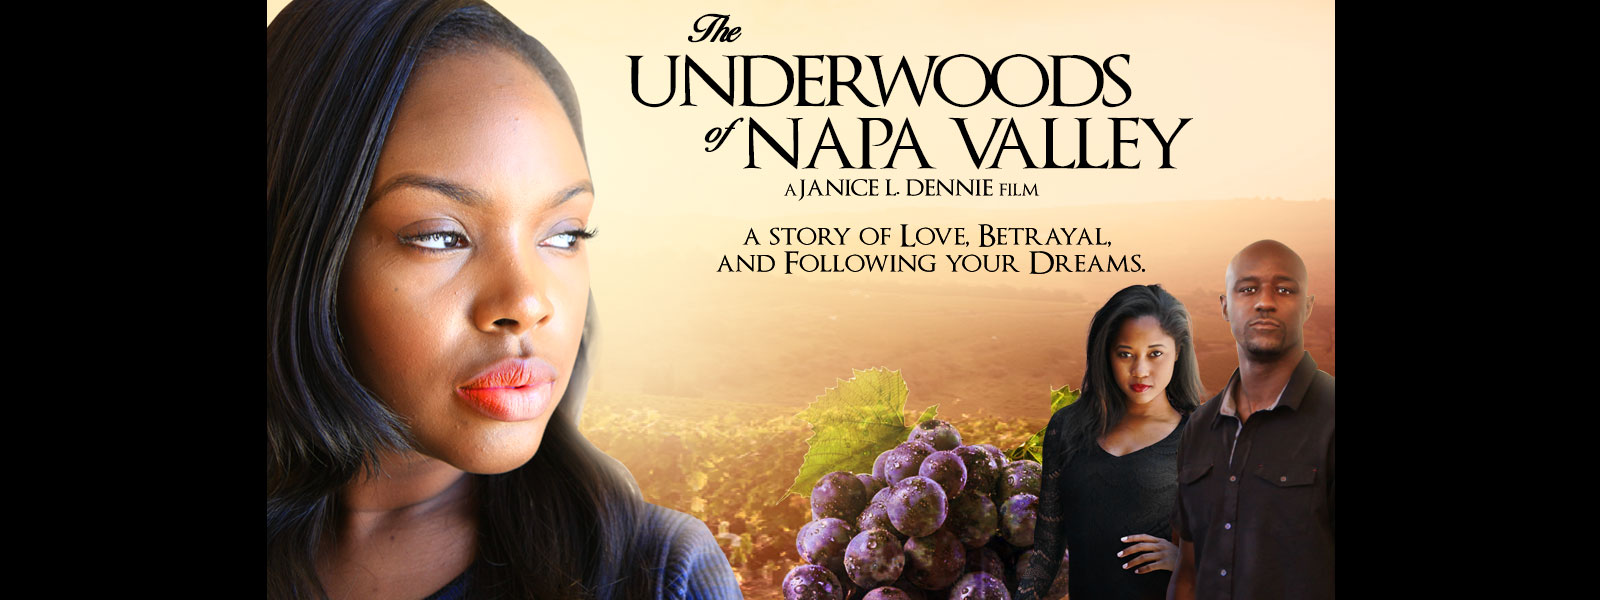 The Underwoods Of Napa Valley